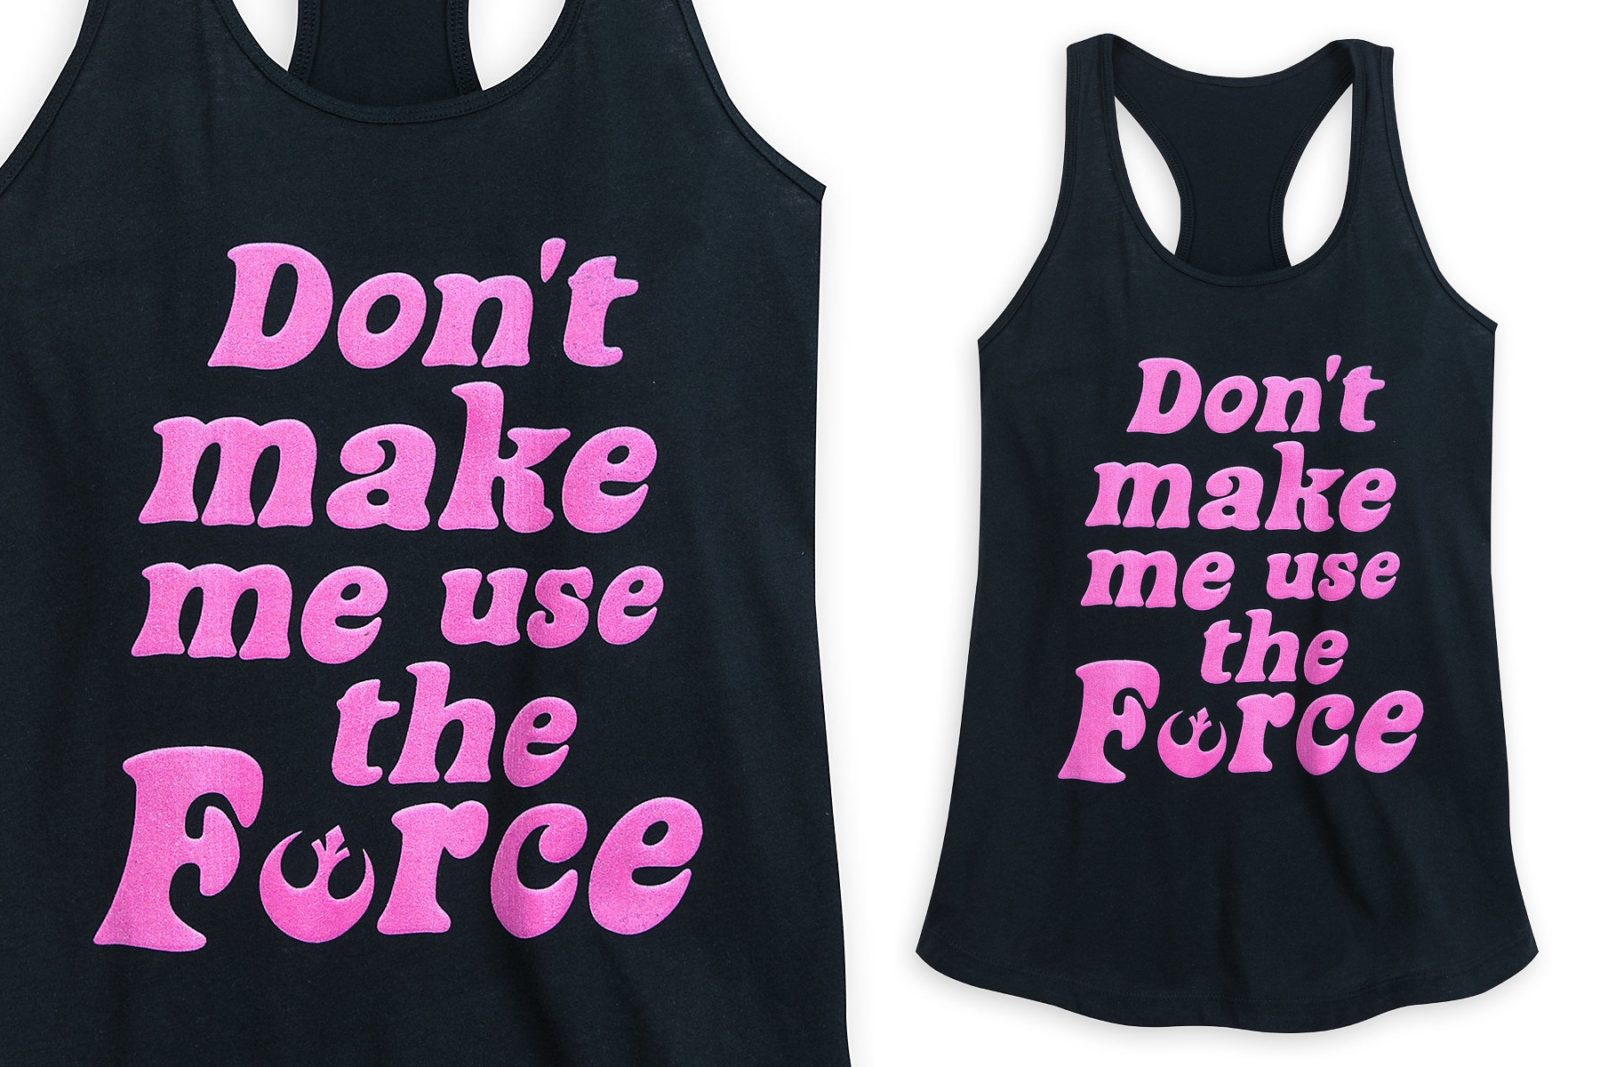 Women's Star Wars Don't Make Me Use The Force Tank Top at Shop Disney